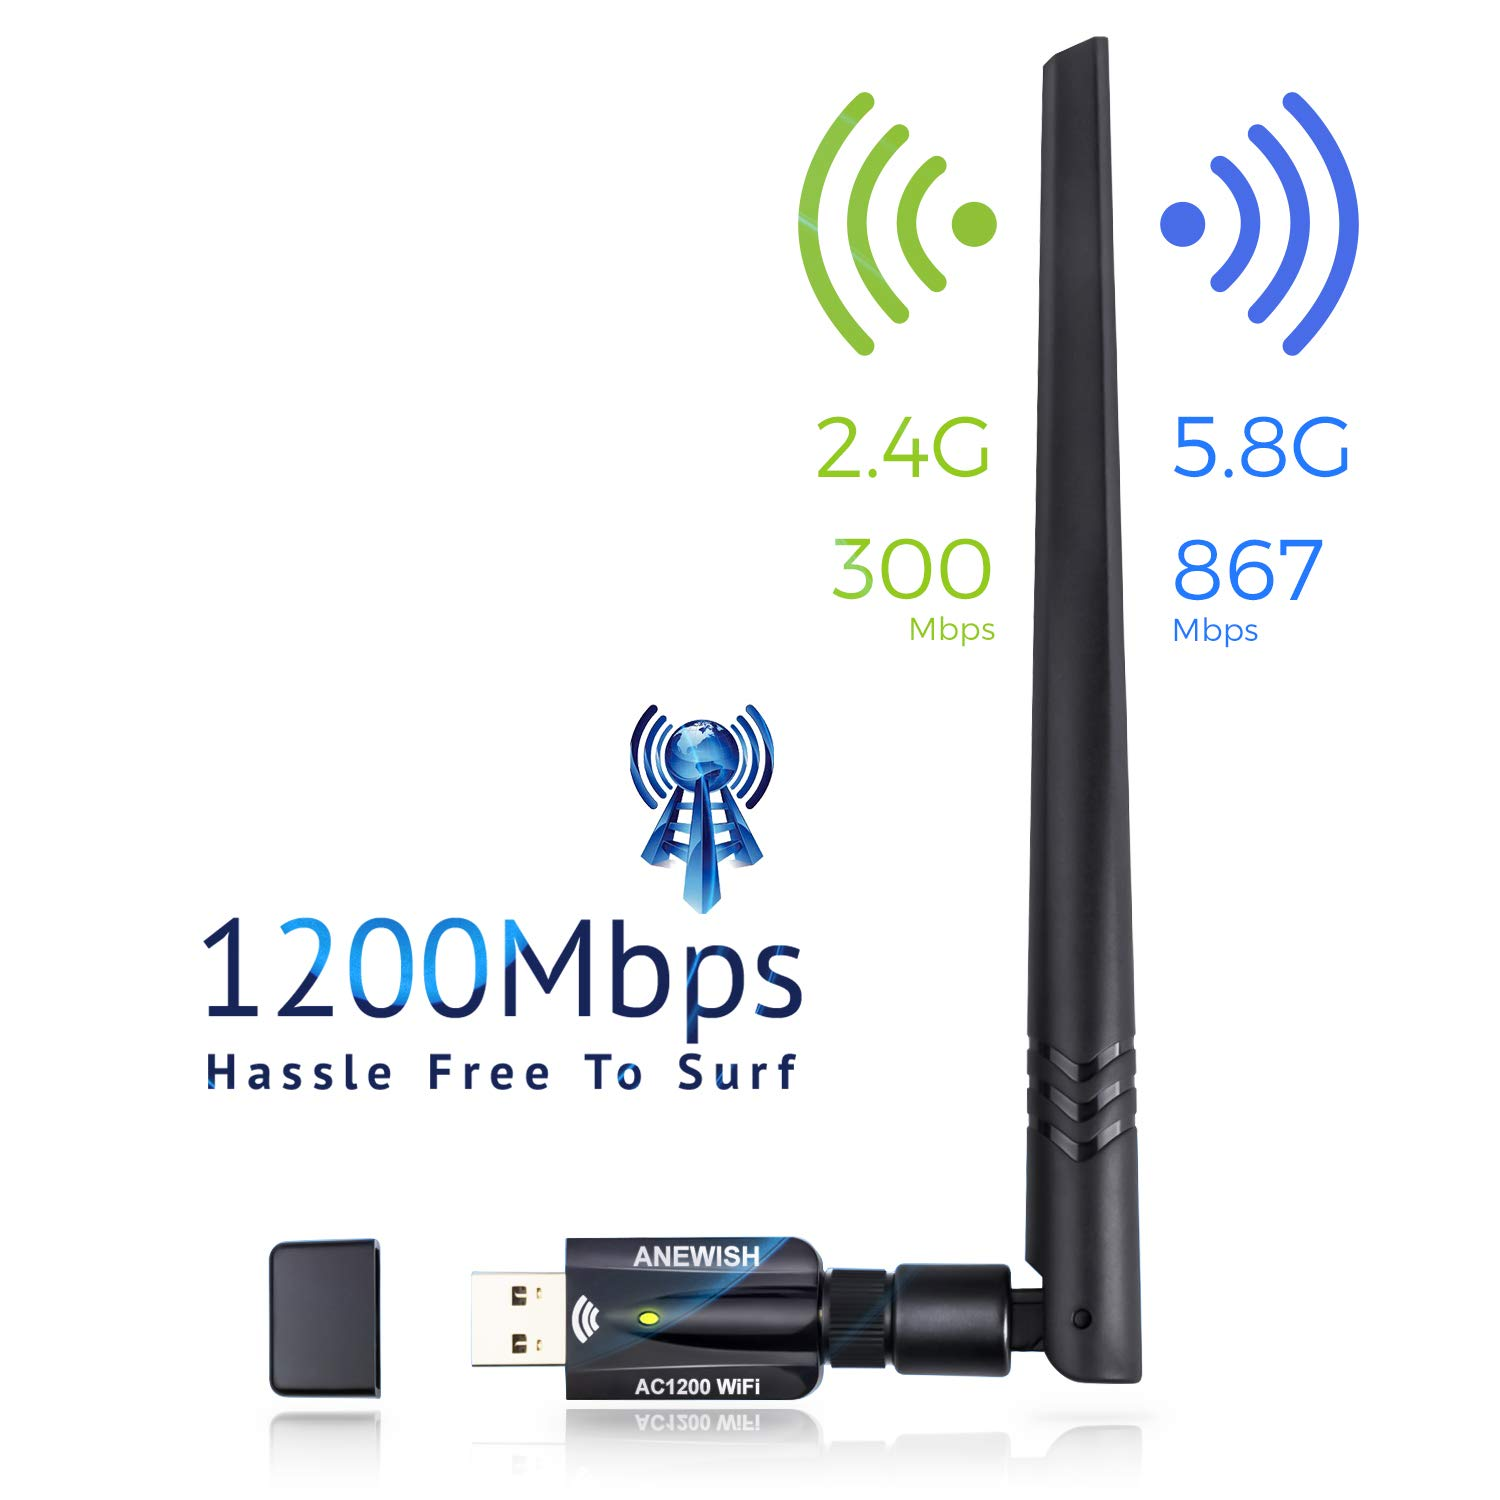 Wifi Adapter for PC 1200Mbps Wireless USB WiFi Adapter 3.0 Network LAN Card with 5dBi Antenna Dual Band 2.4G/5G 802.11ac WiFi Adapter Compatible PC/Desktop/Laptop/Tablet, Windows 10/8.1/8/7/XP, Mac OS